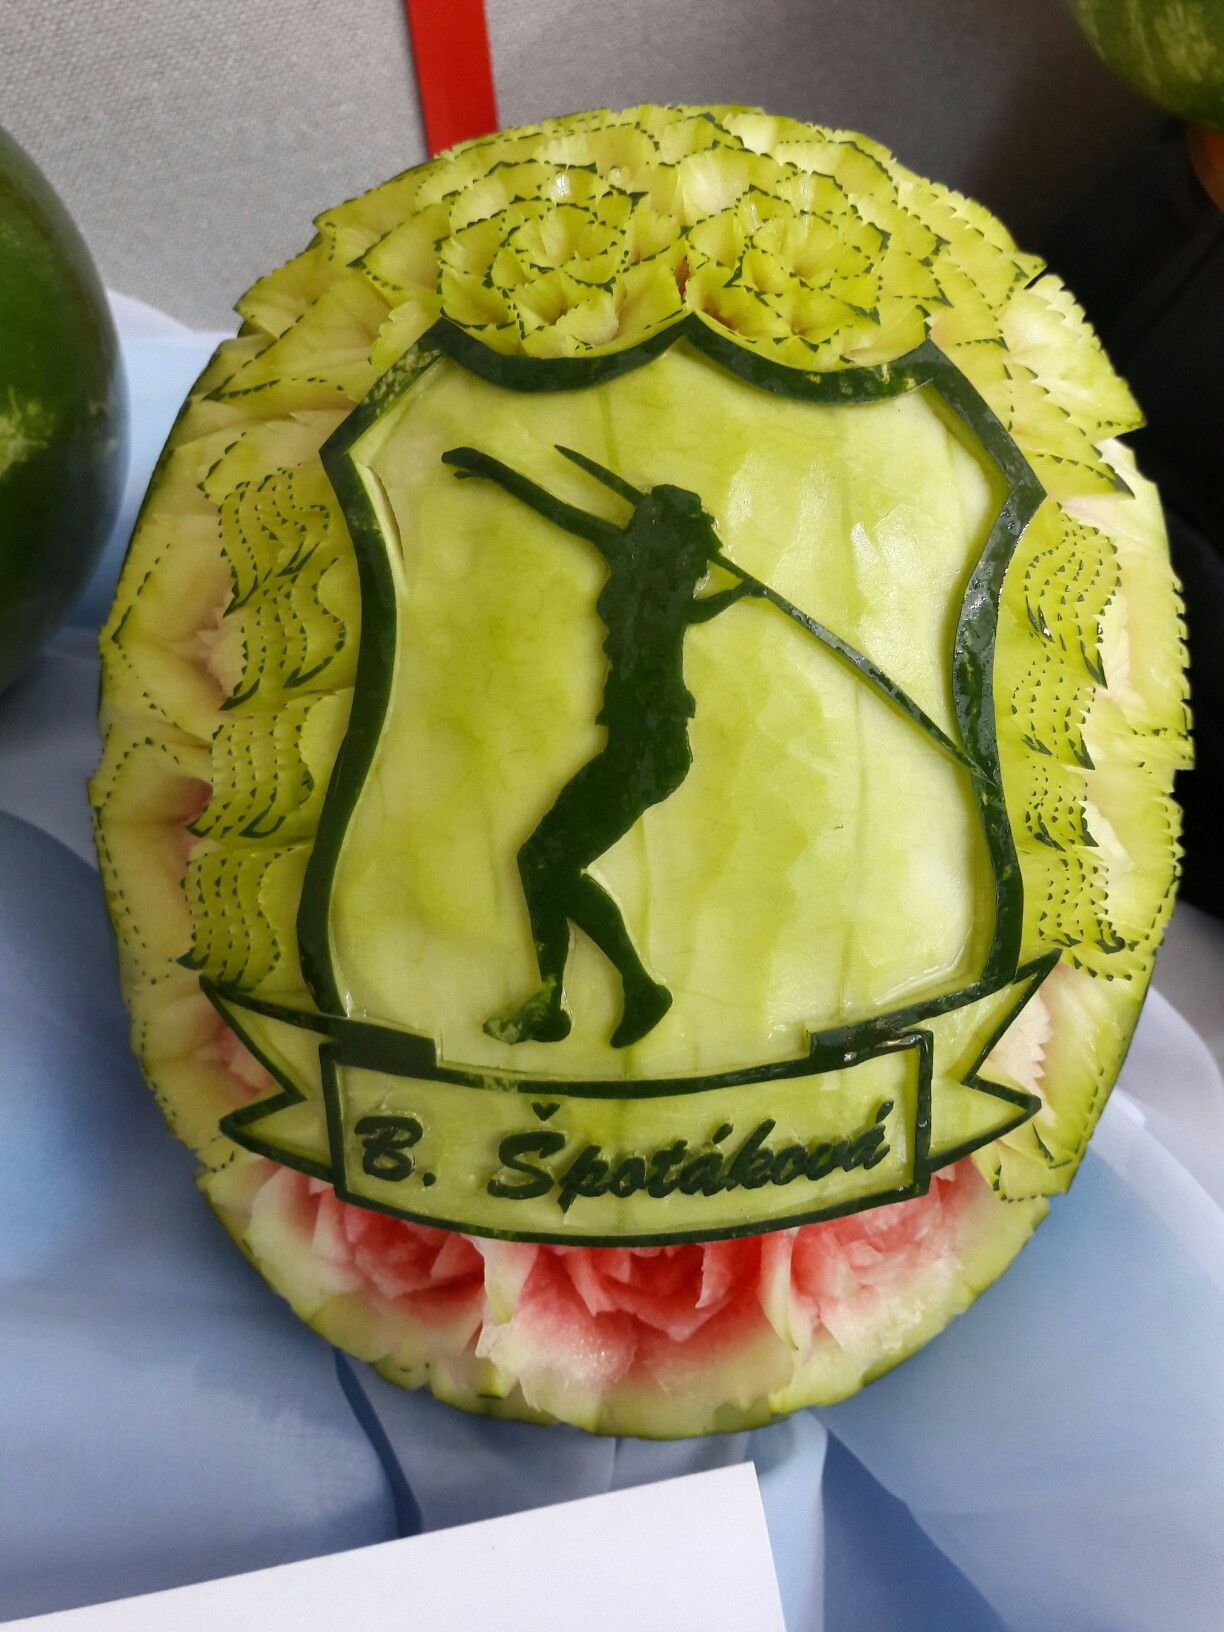 Carving fruit carving watermelon birthday gift thai carving